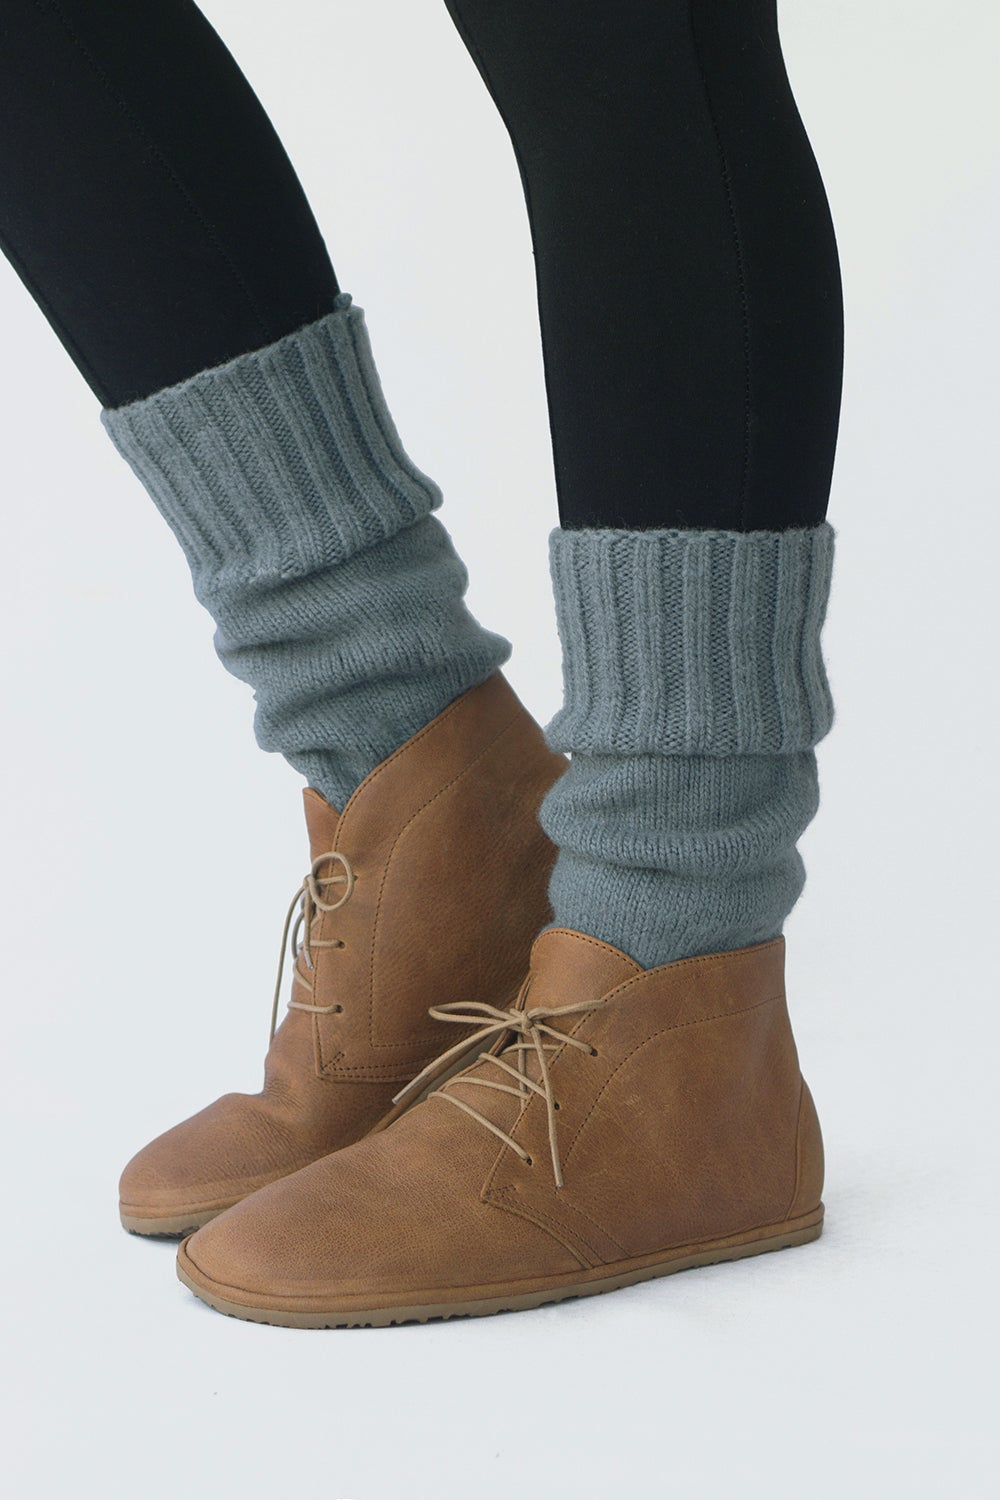 Image of Leona boots in Caramel